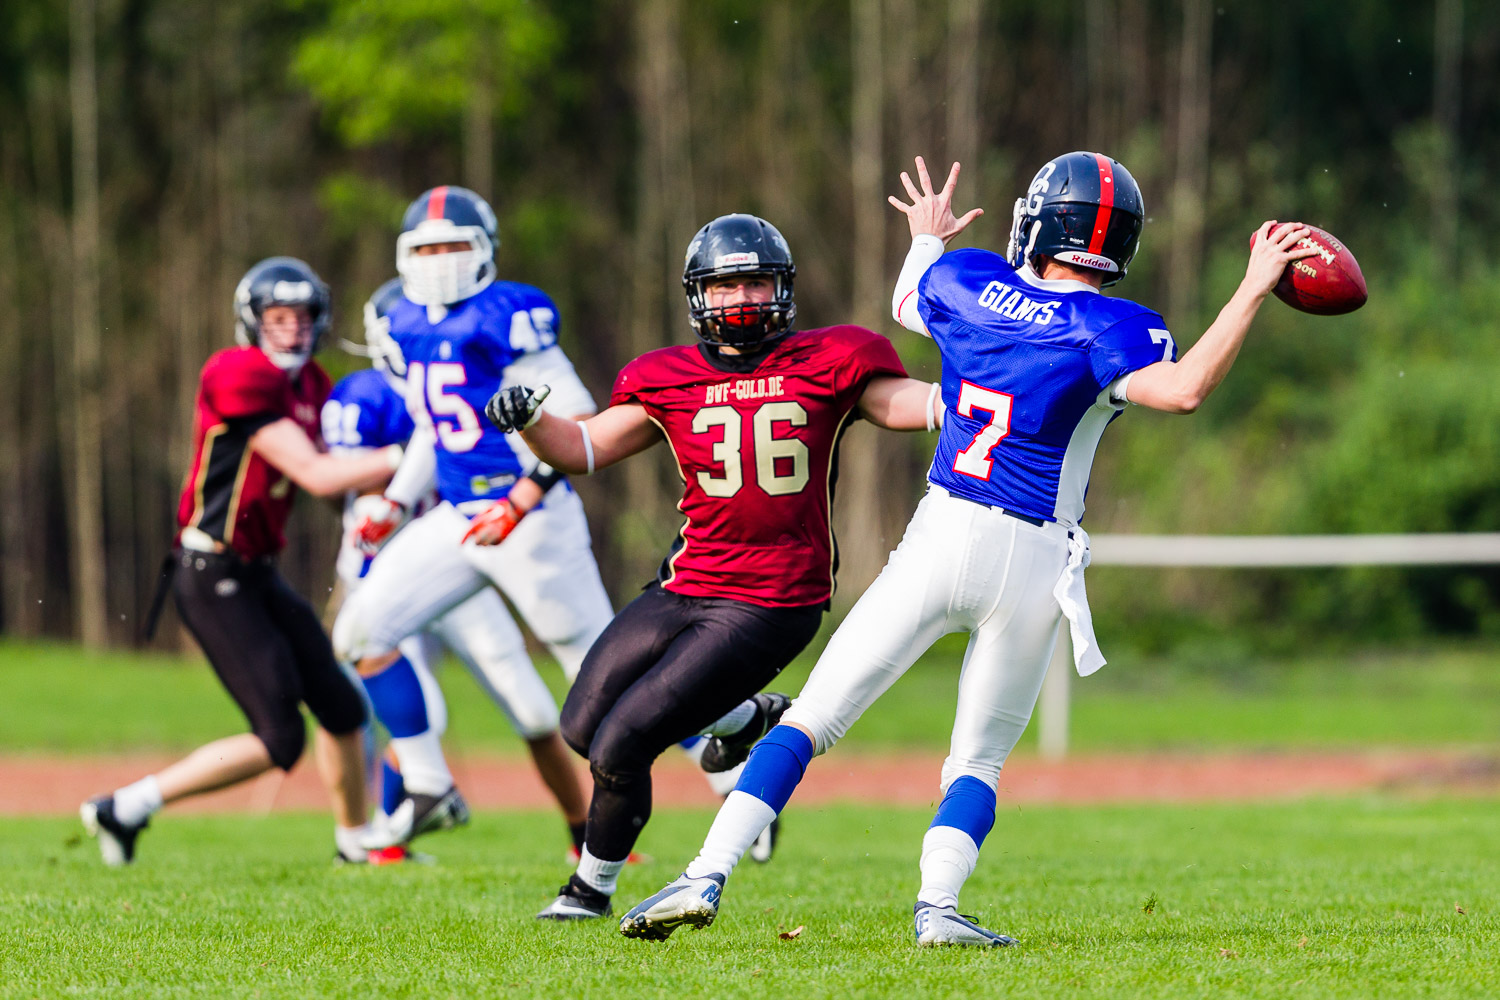 GFLJ 2014 - Dortmund Giants U19 vs. Cologne Falcons U19